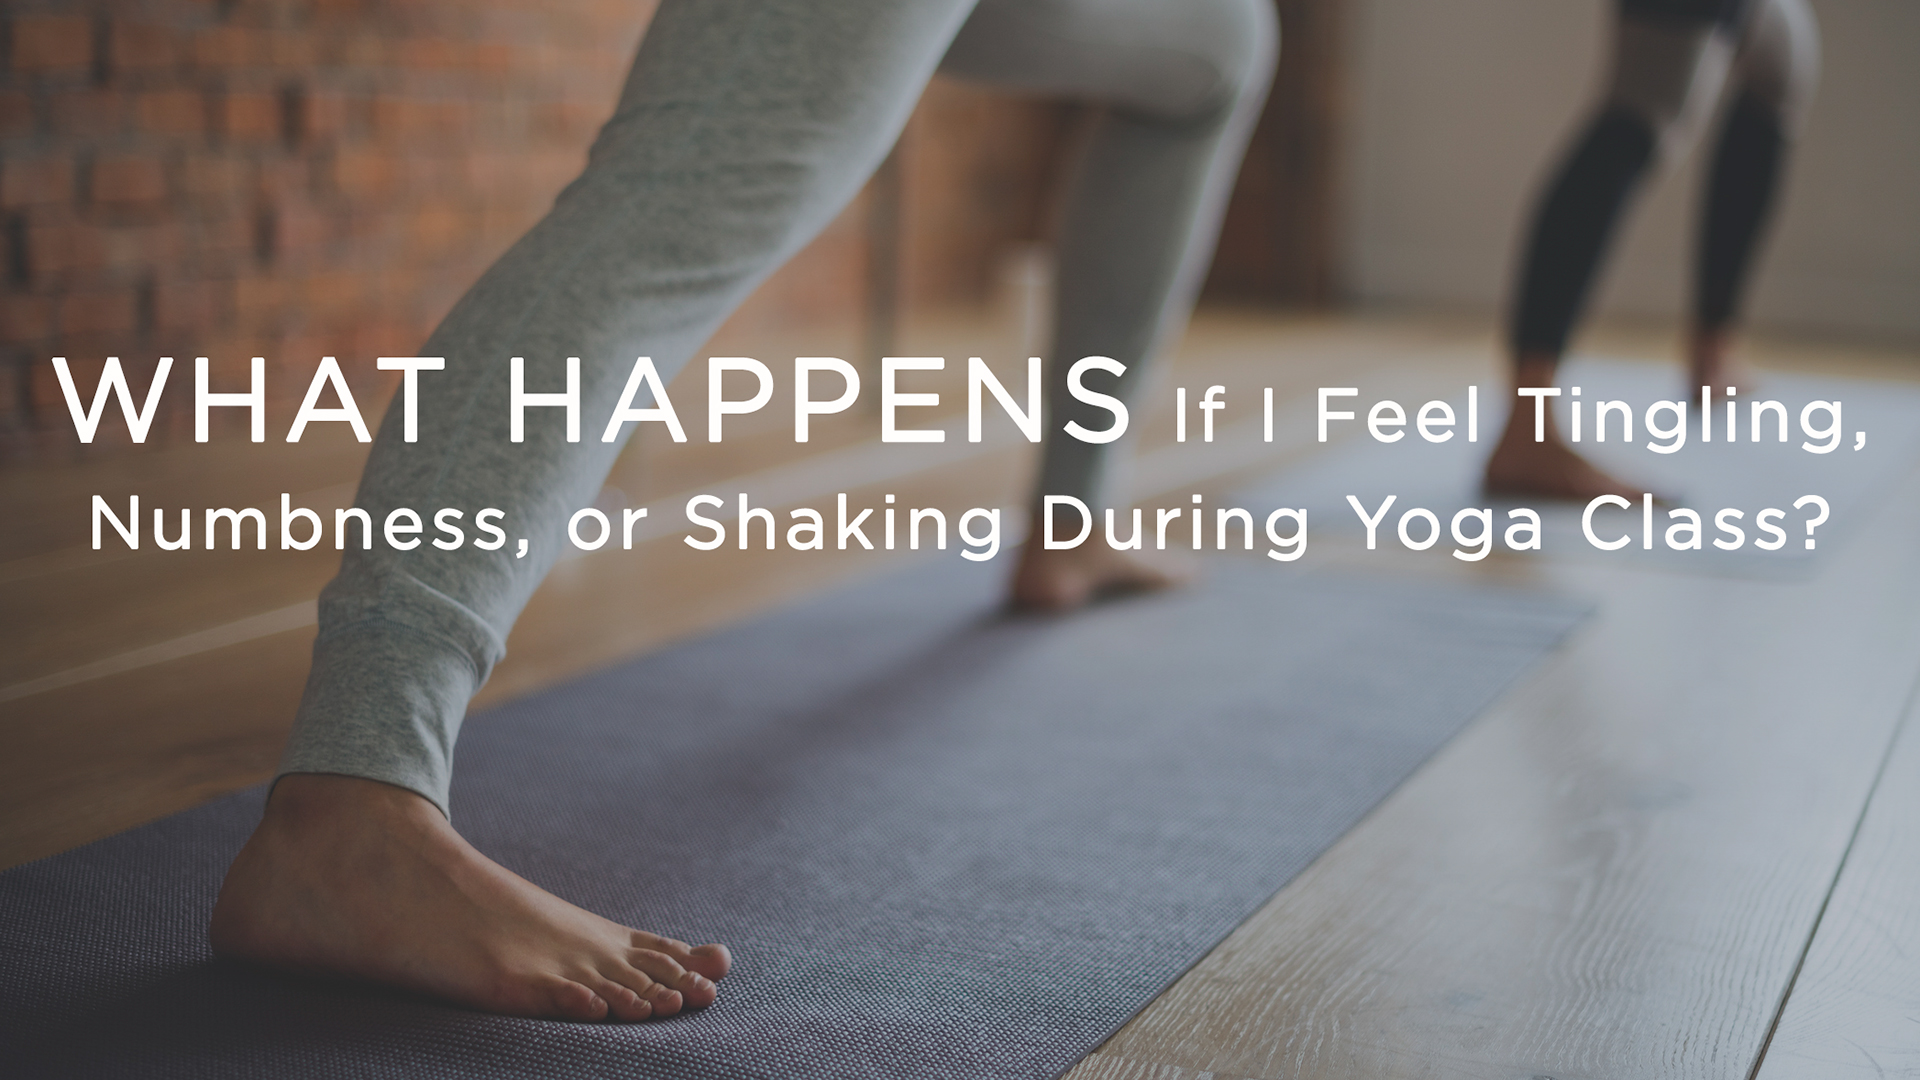 What Happens If I Feel Tingling, Numbness, or Shaking During Yoga Class?